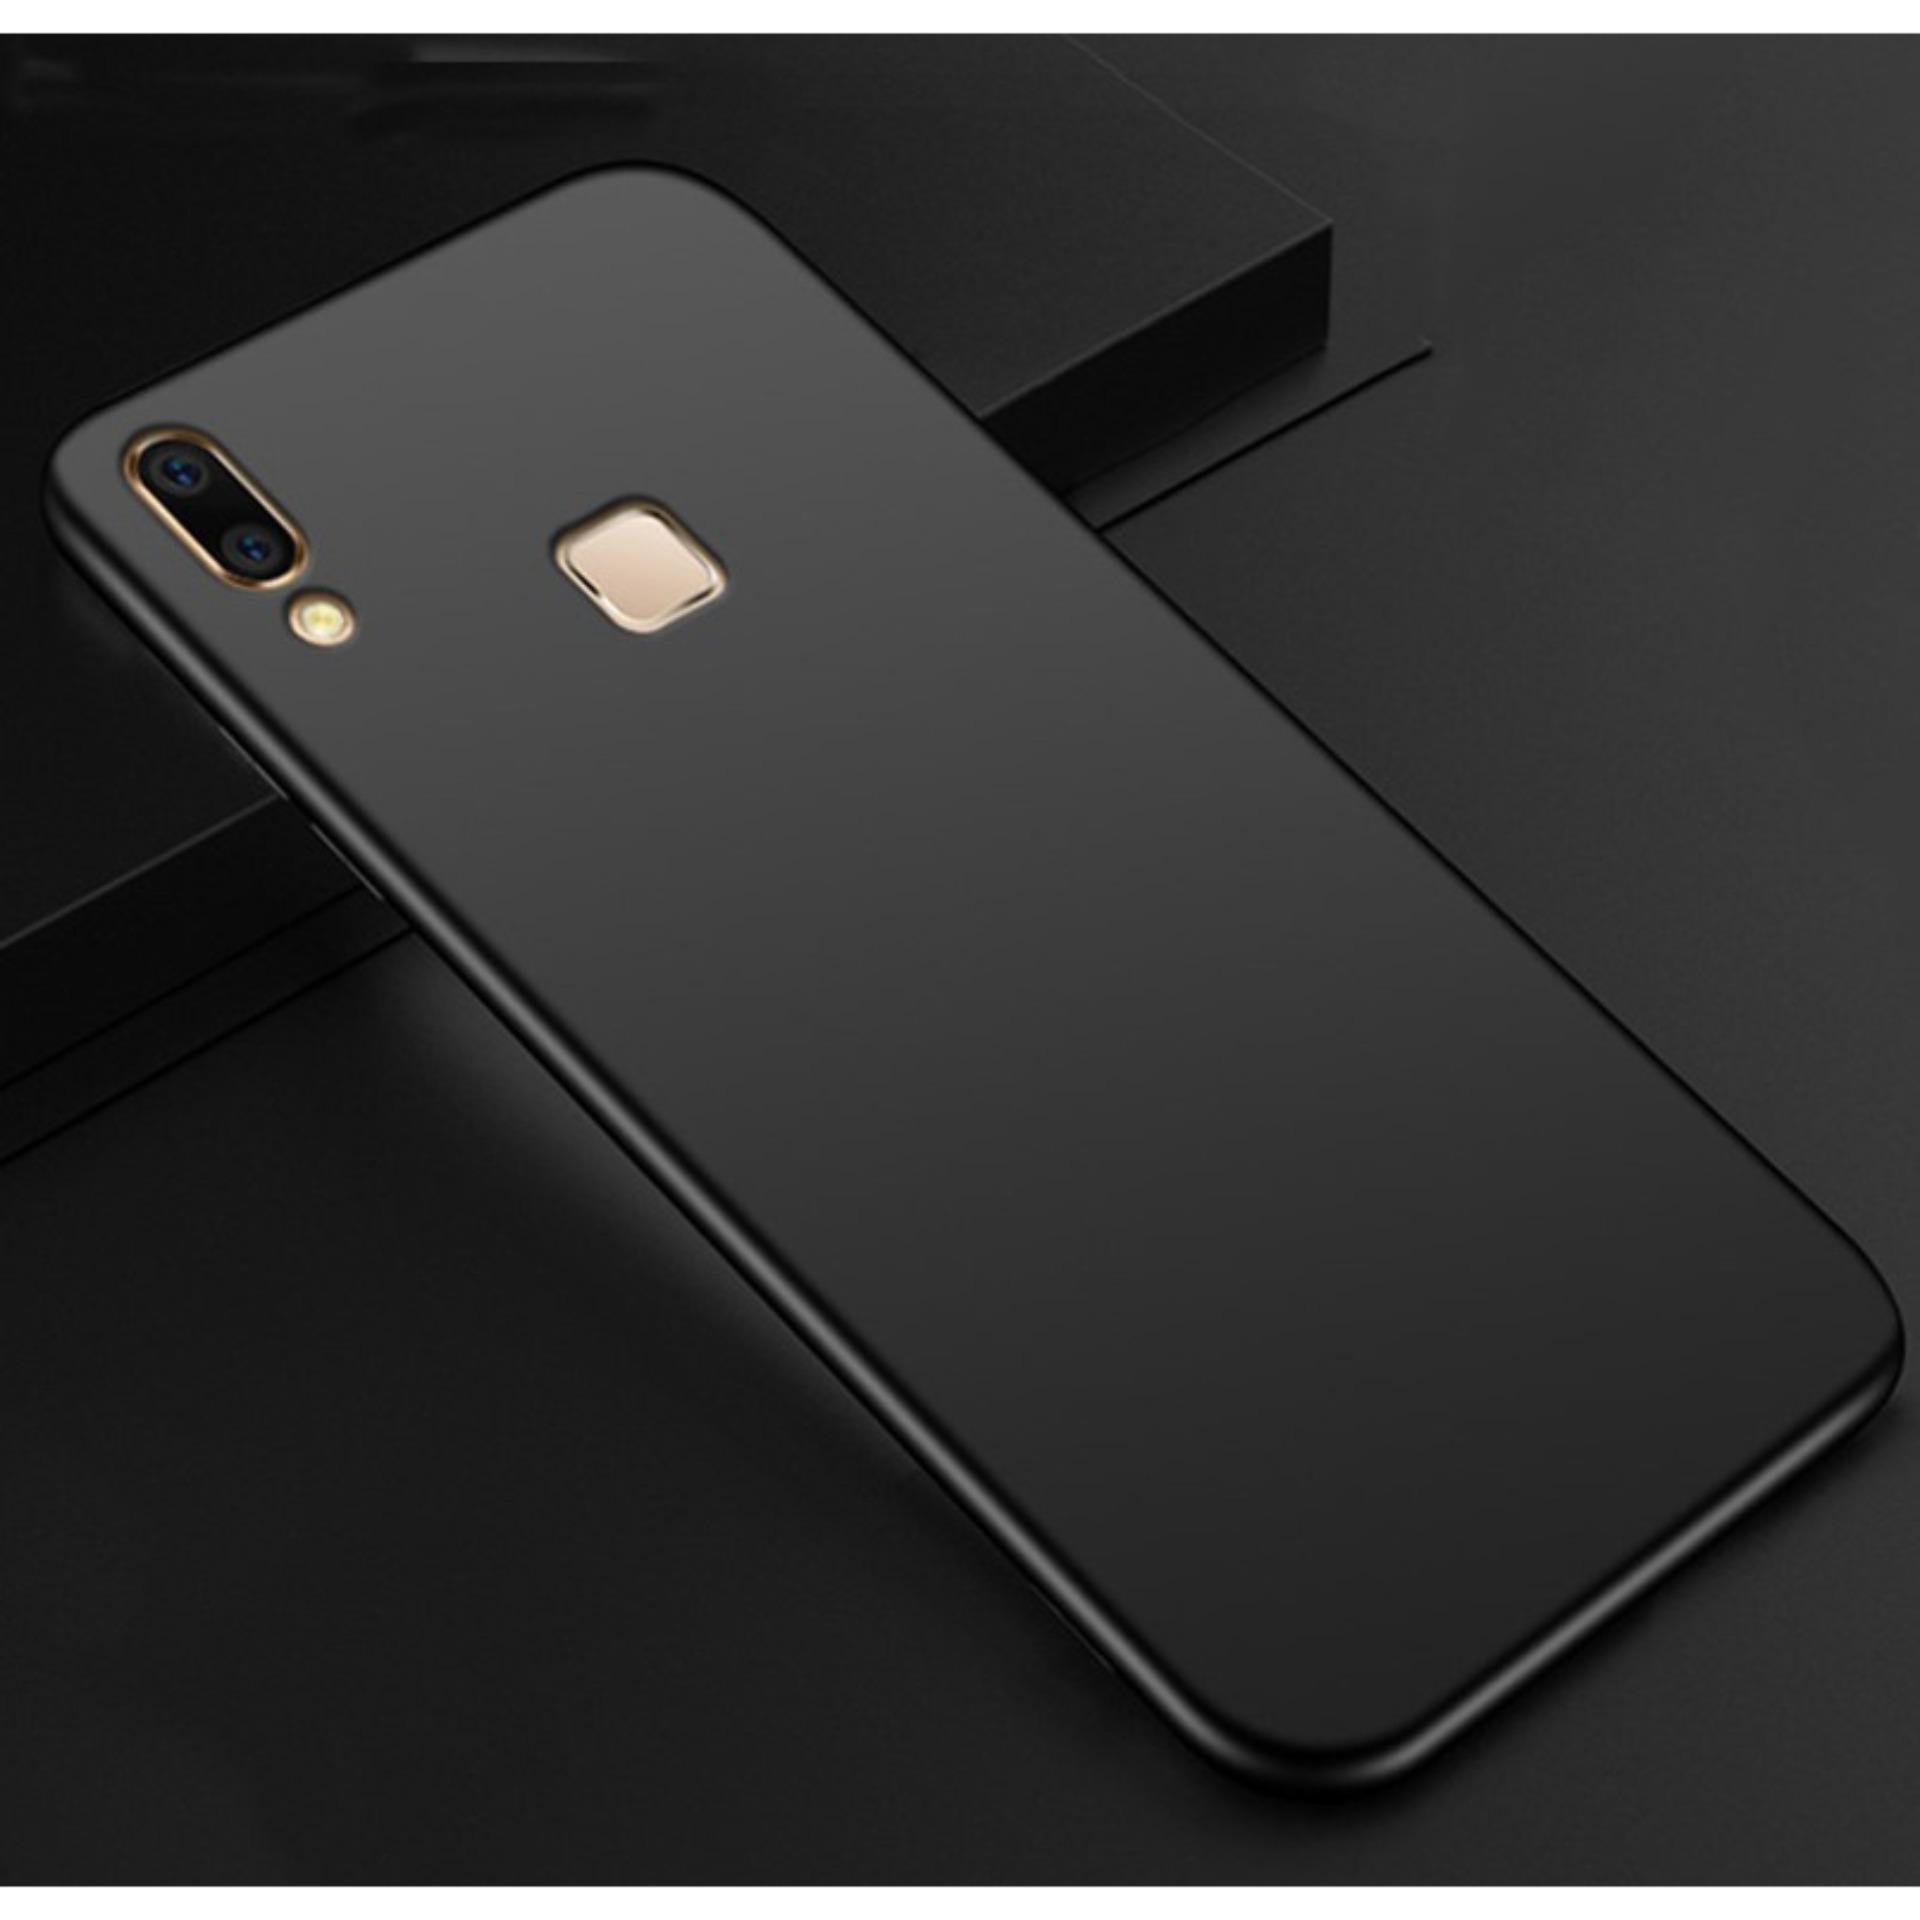 Buy Sell Cheapest Silicone Back Cover Best Quality Product Deals Case Iphone 6 6s Anti Crack Shock Softcase Ultrathin Clear Tpu Ultra Thin Soft Black Matte Frosted Fingerprint For Vivo